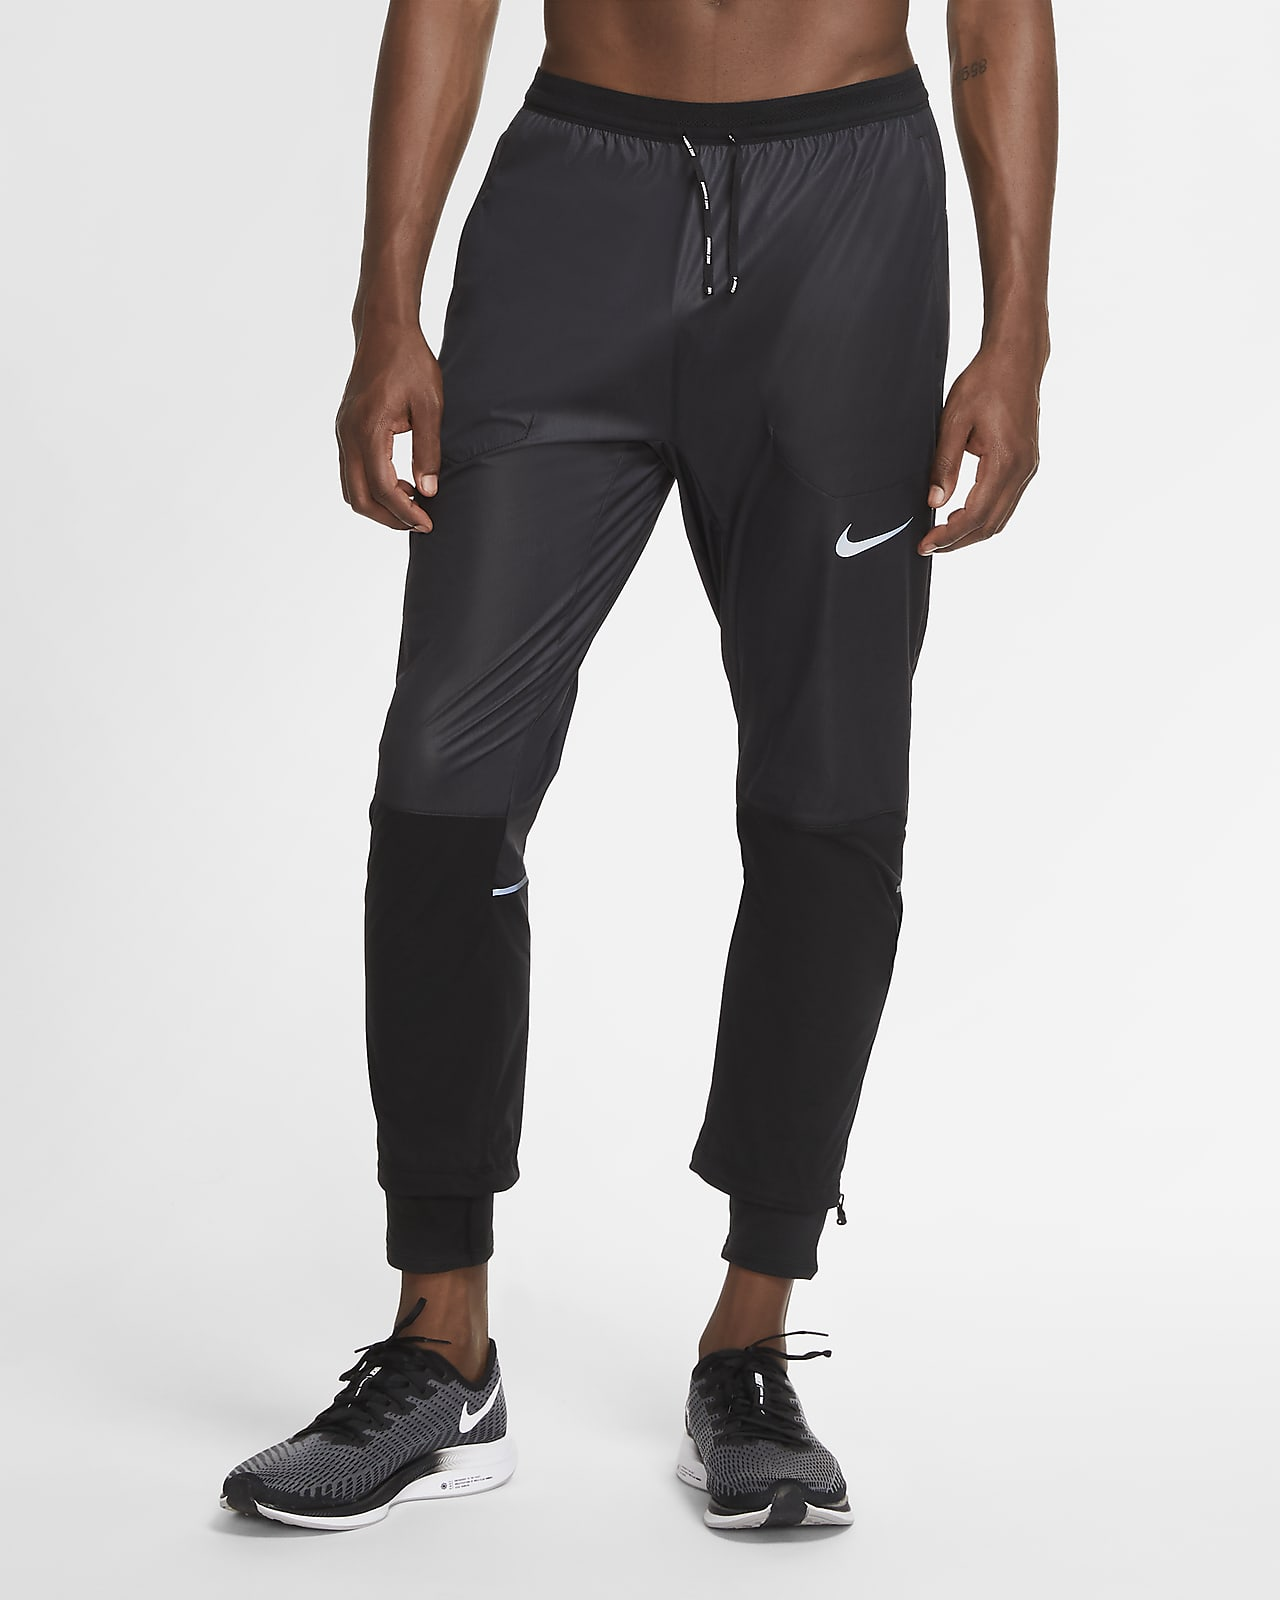 Nike Swift Shield Men's Running Trousers